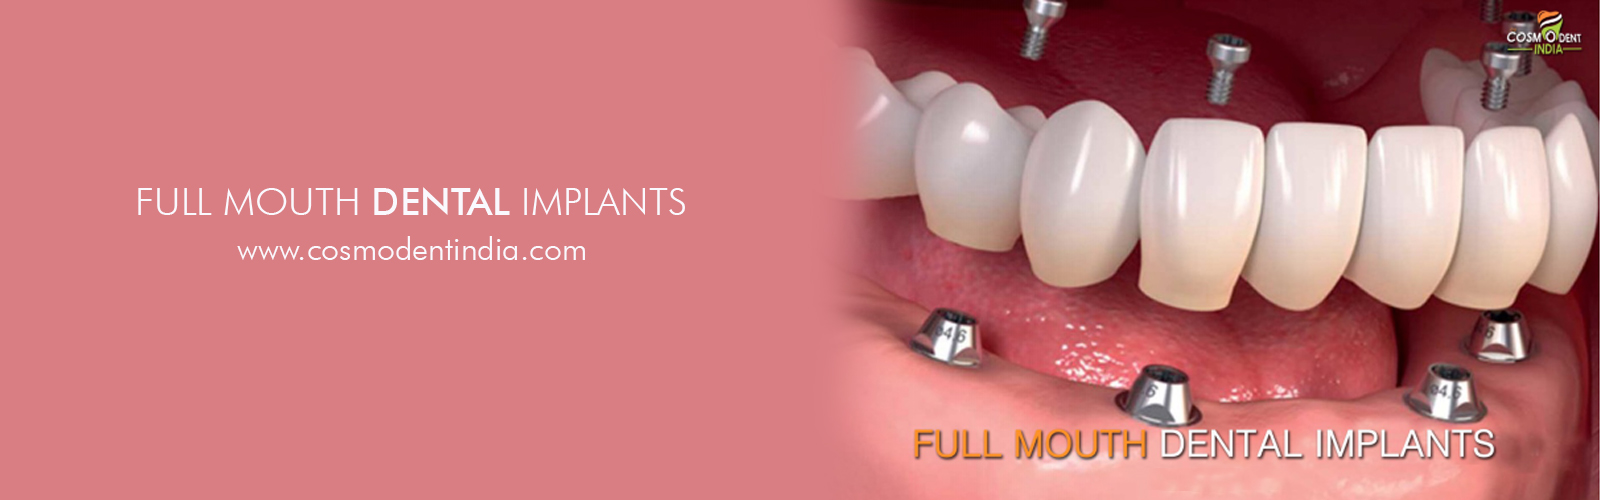 implants dentaires-cout-a-delhi-gurgaon